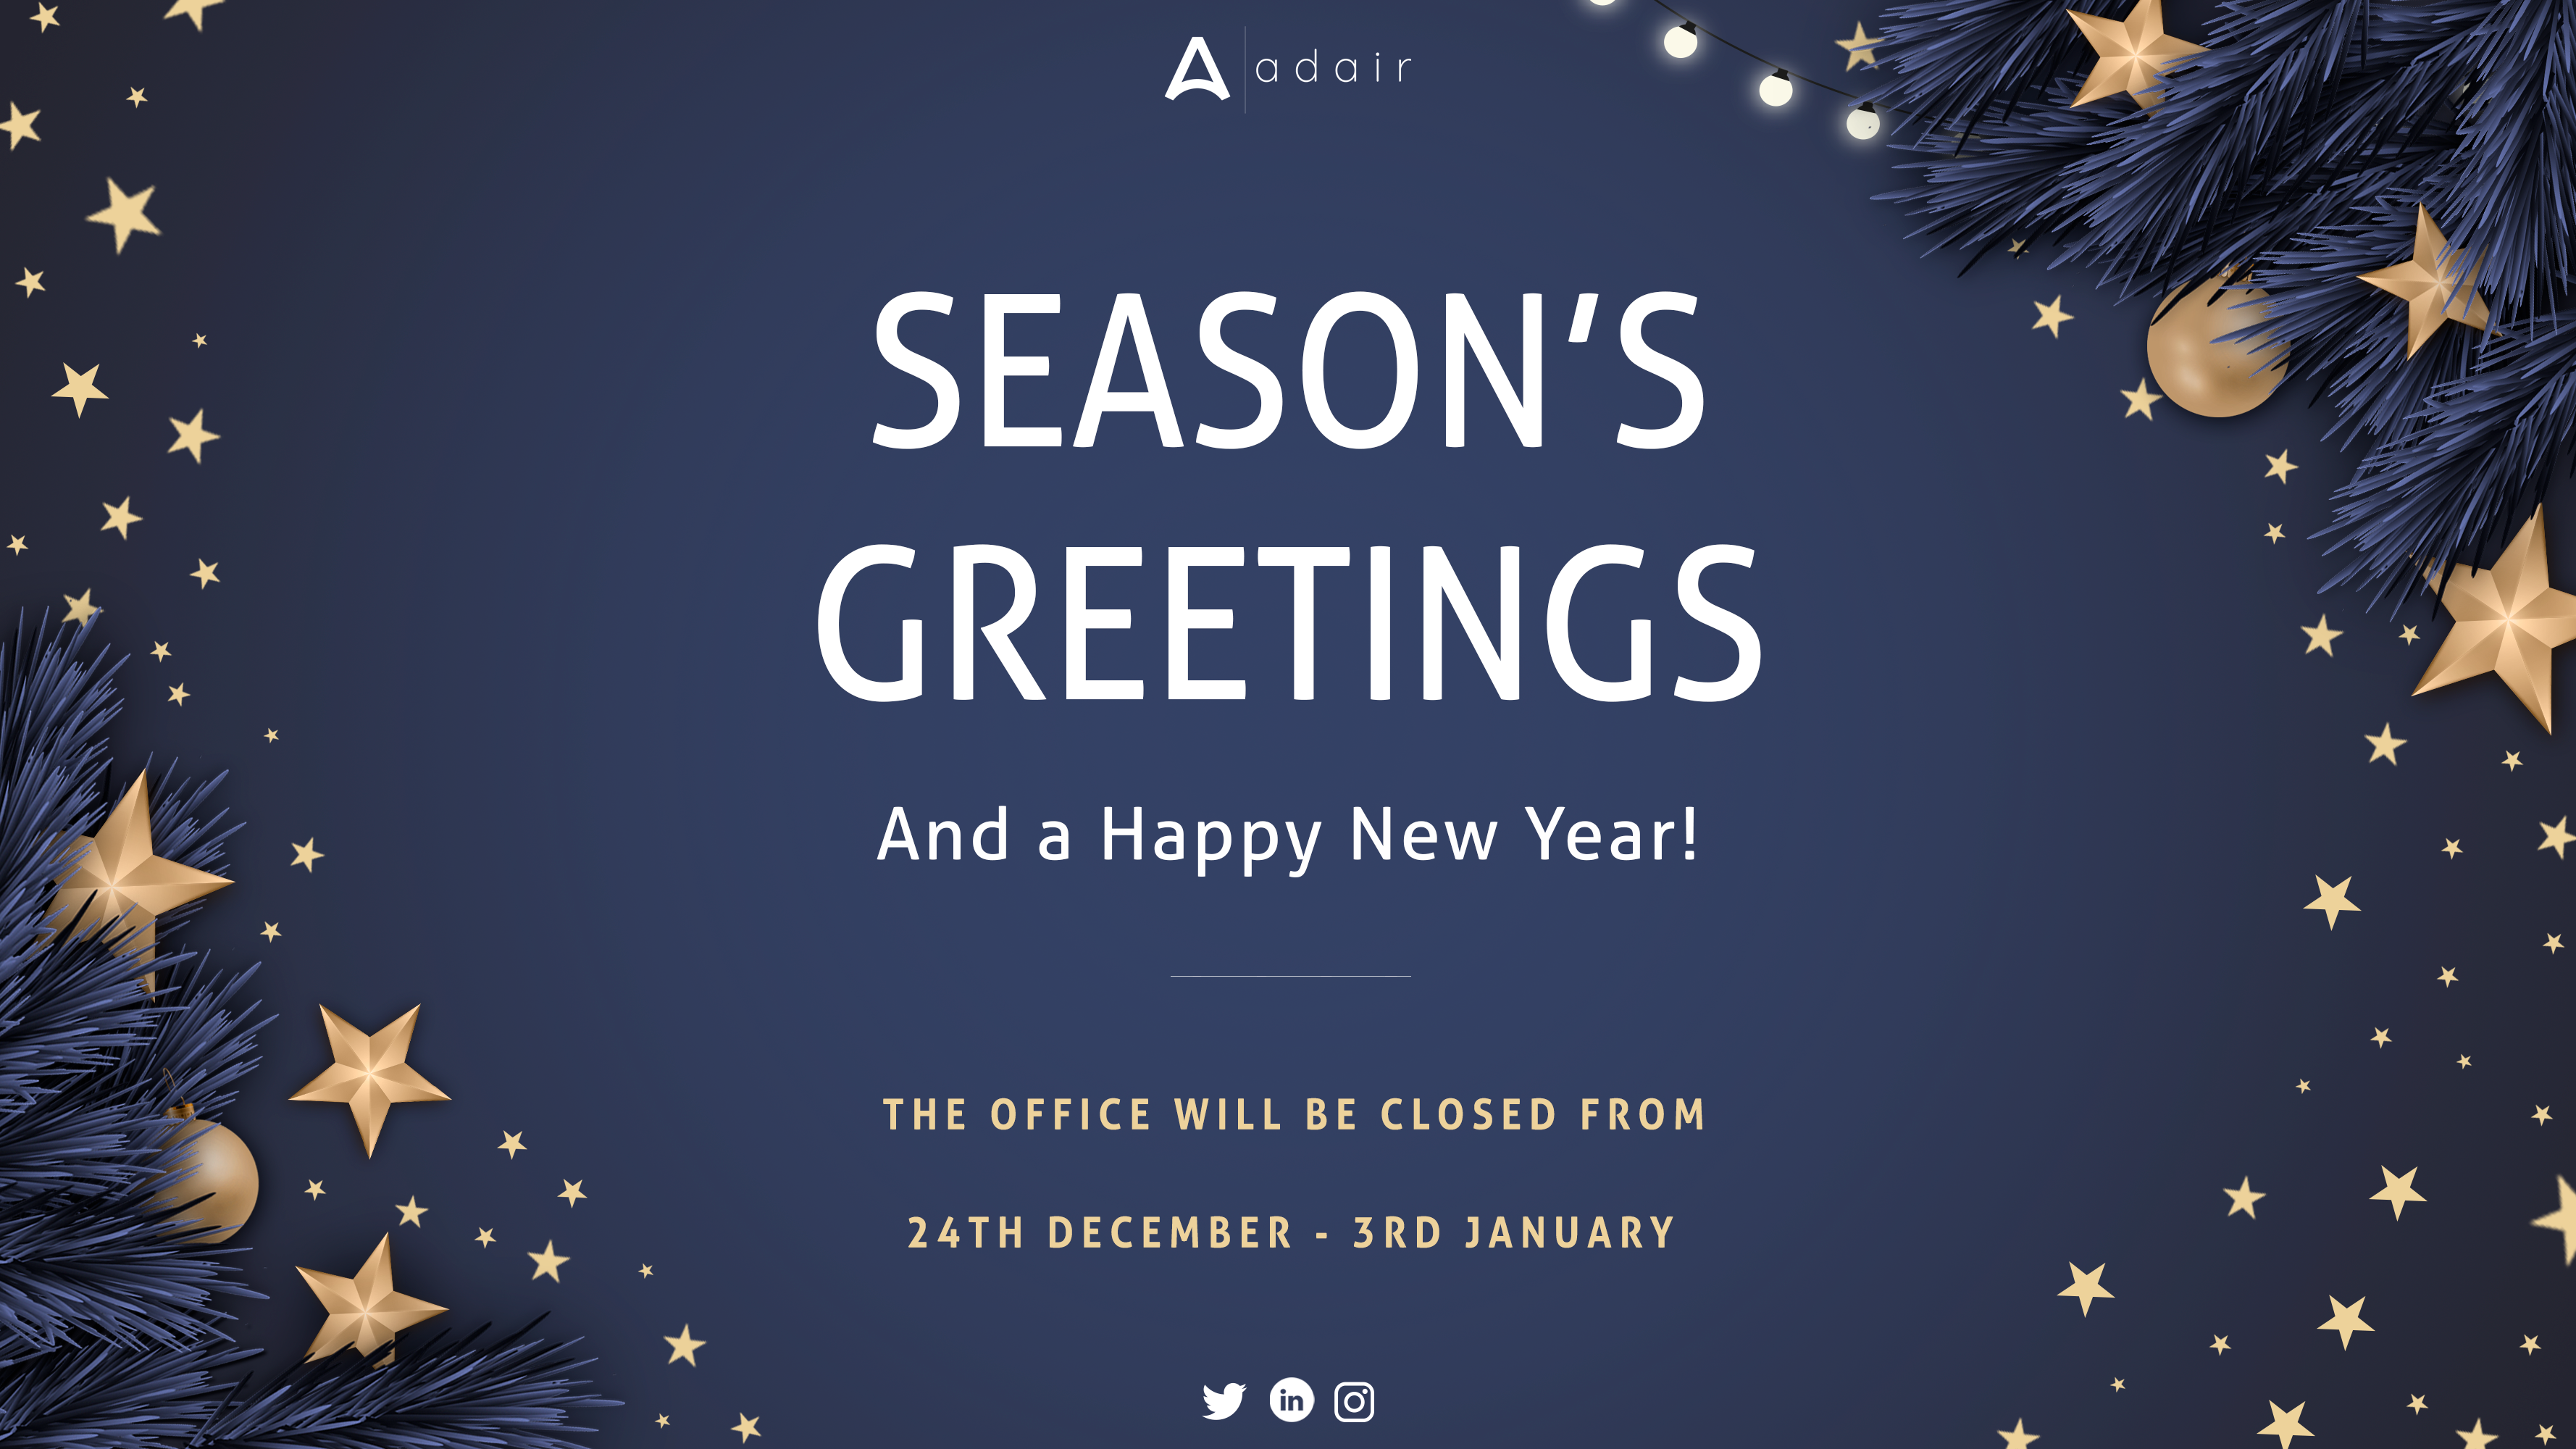 Season's Greetings from all at Adair! Please see our updated office hours during the festive period…